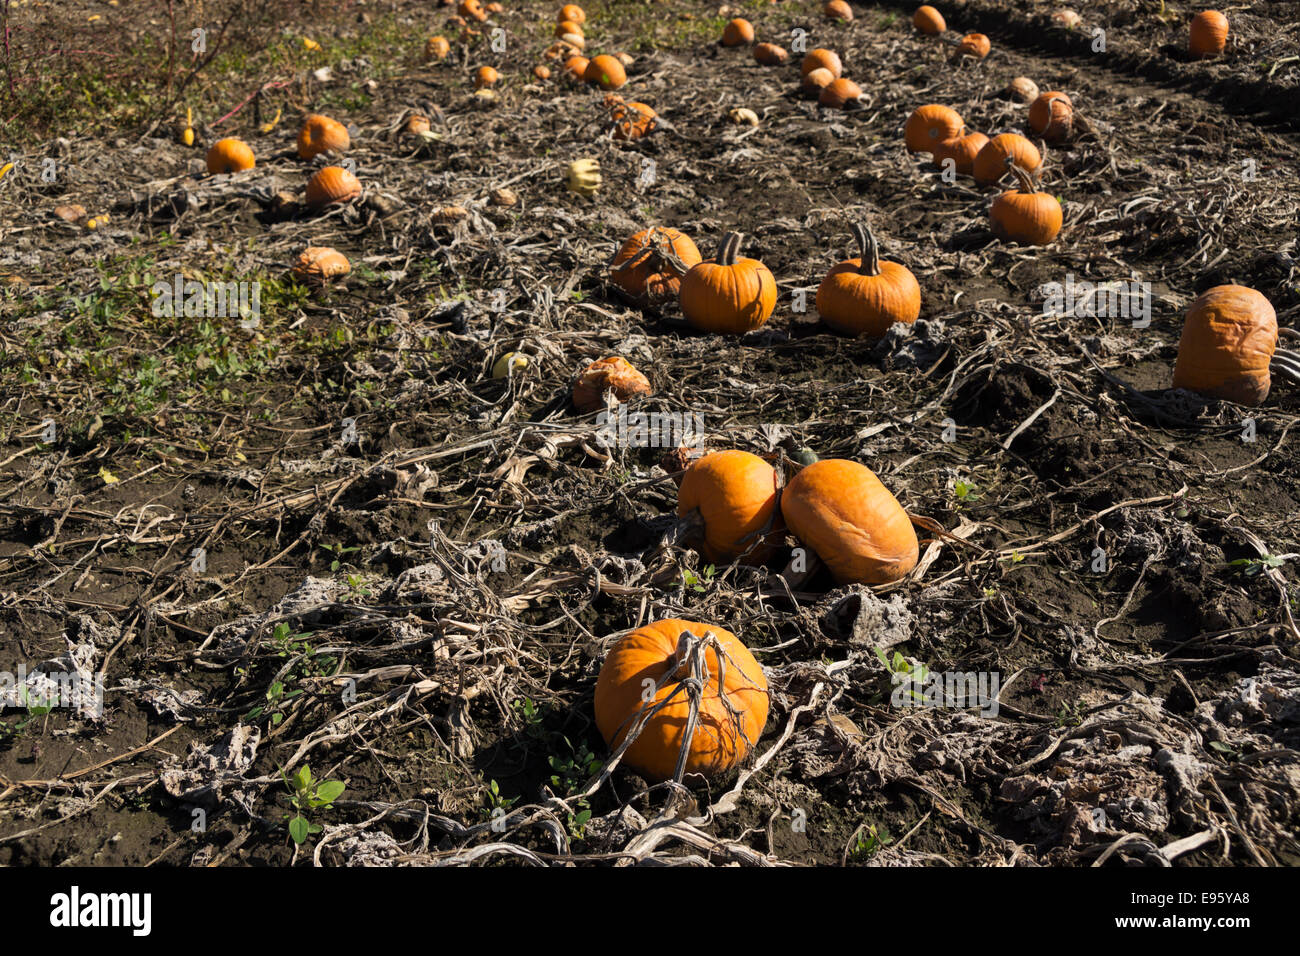 Late season pumpkins lie rotting in a northern Illinois farm field after several heavy frosts. - Stock Image